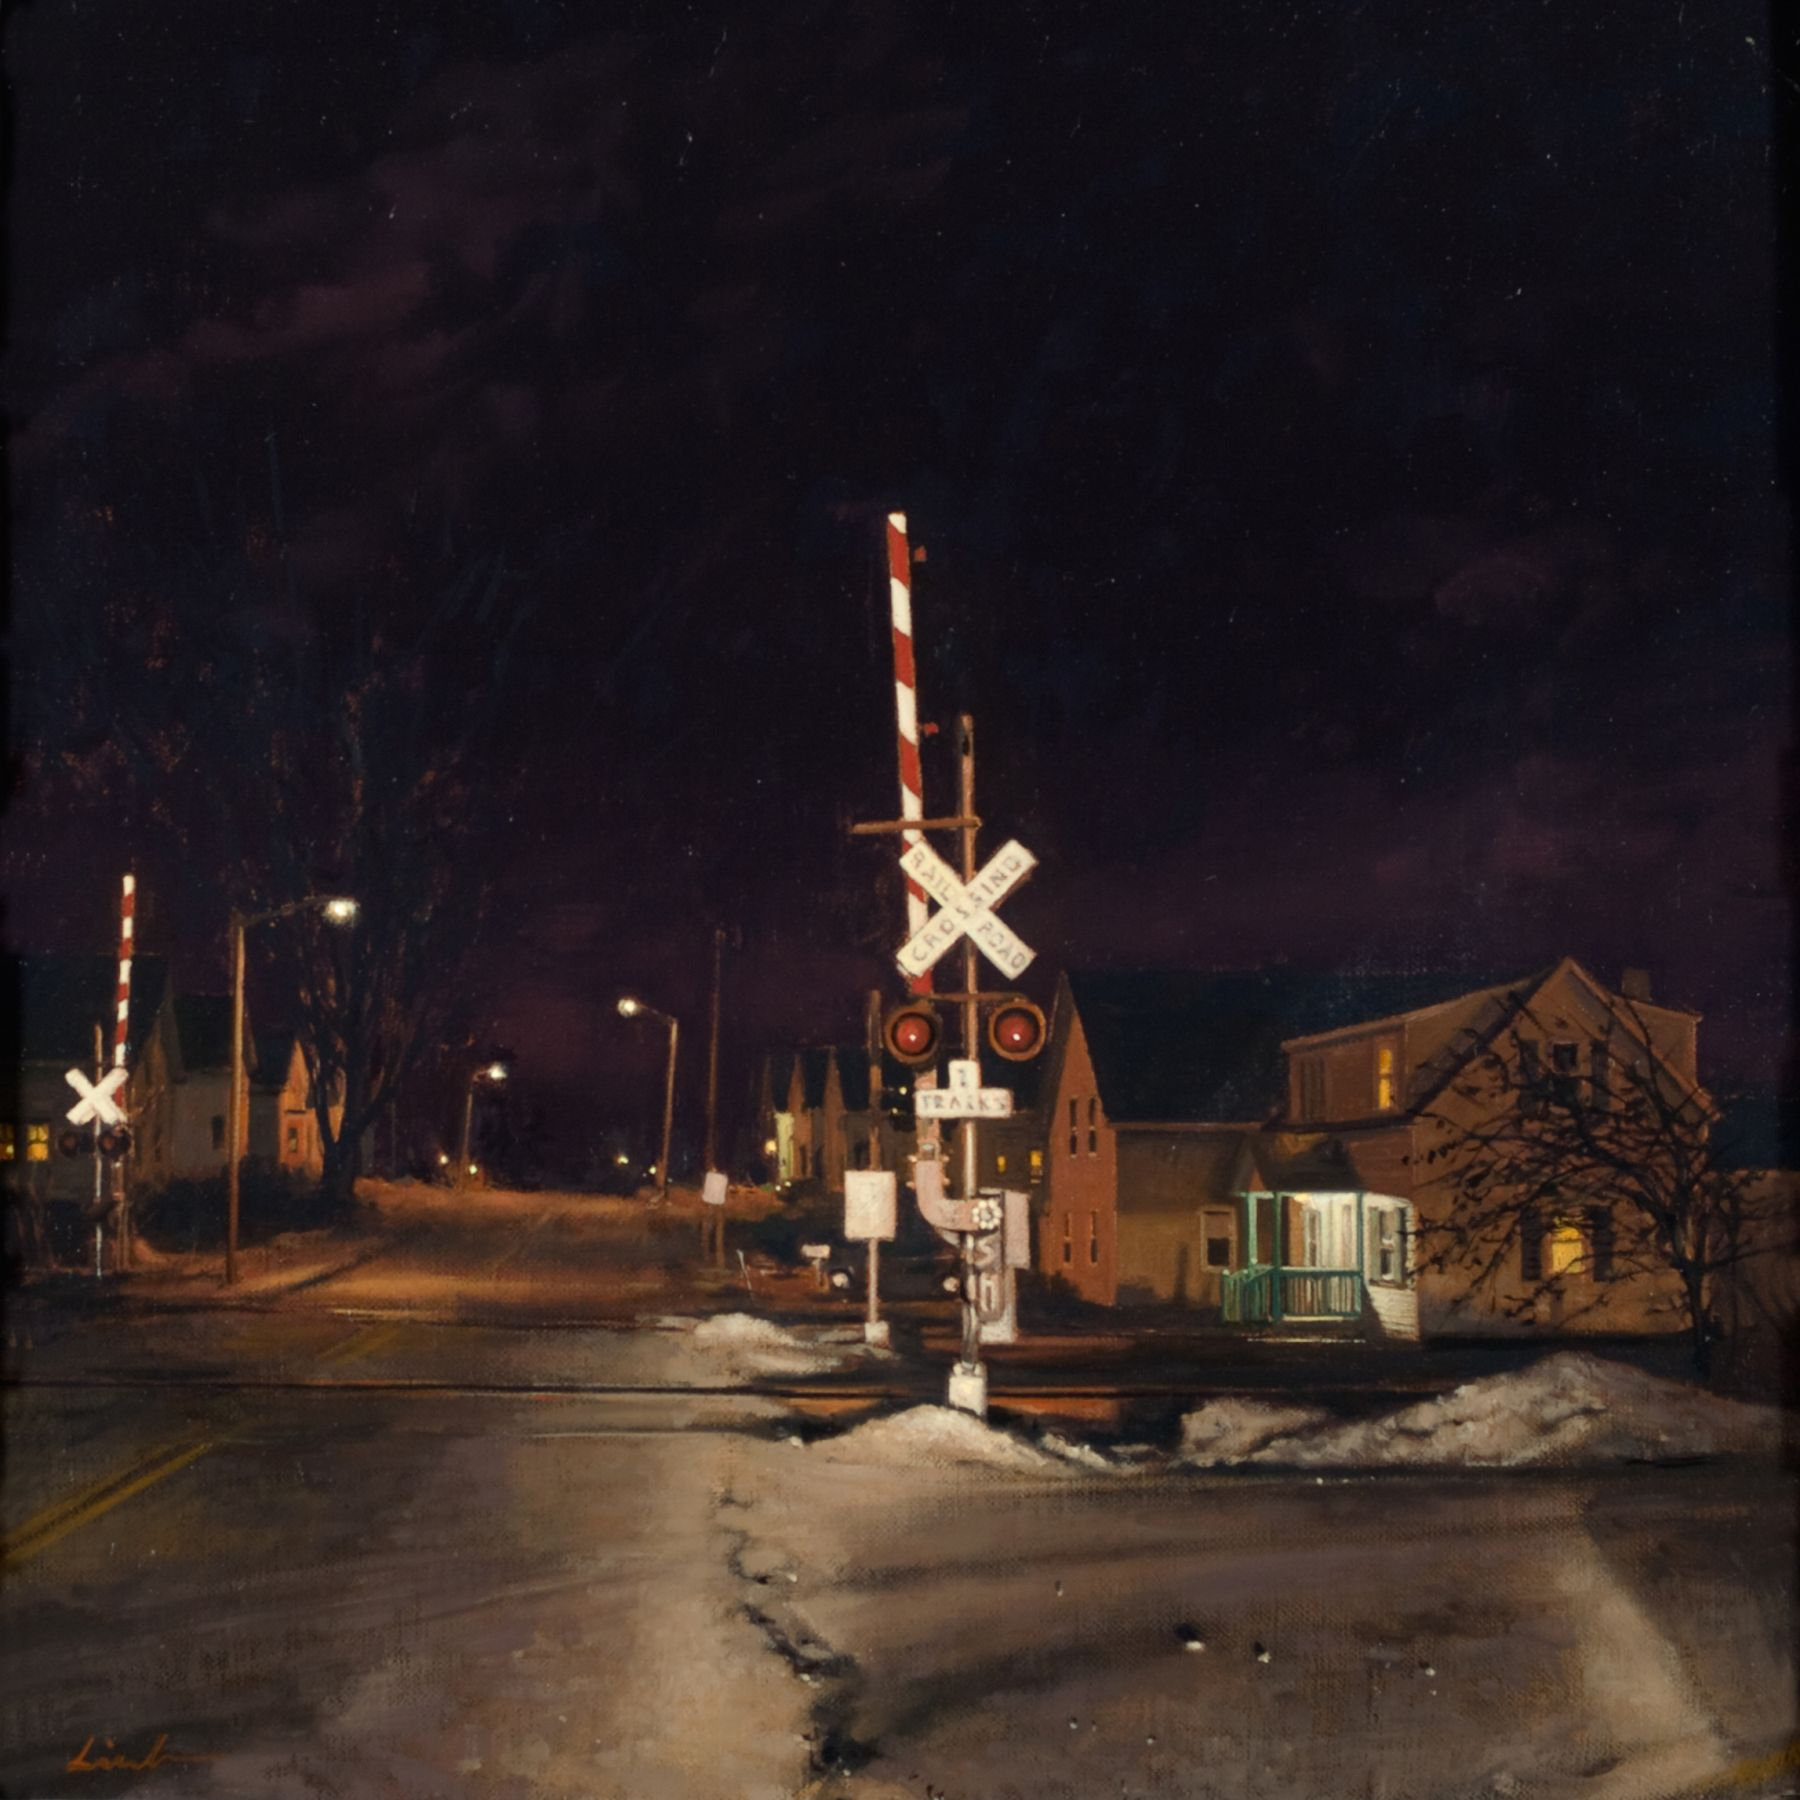 Linden Frederick, Crossing (SOLD), 2008, oil on panel, 12 1/4 x 12 1/4 inches